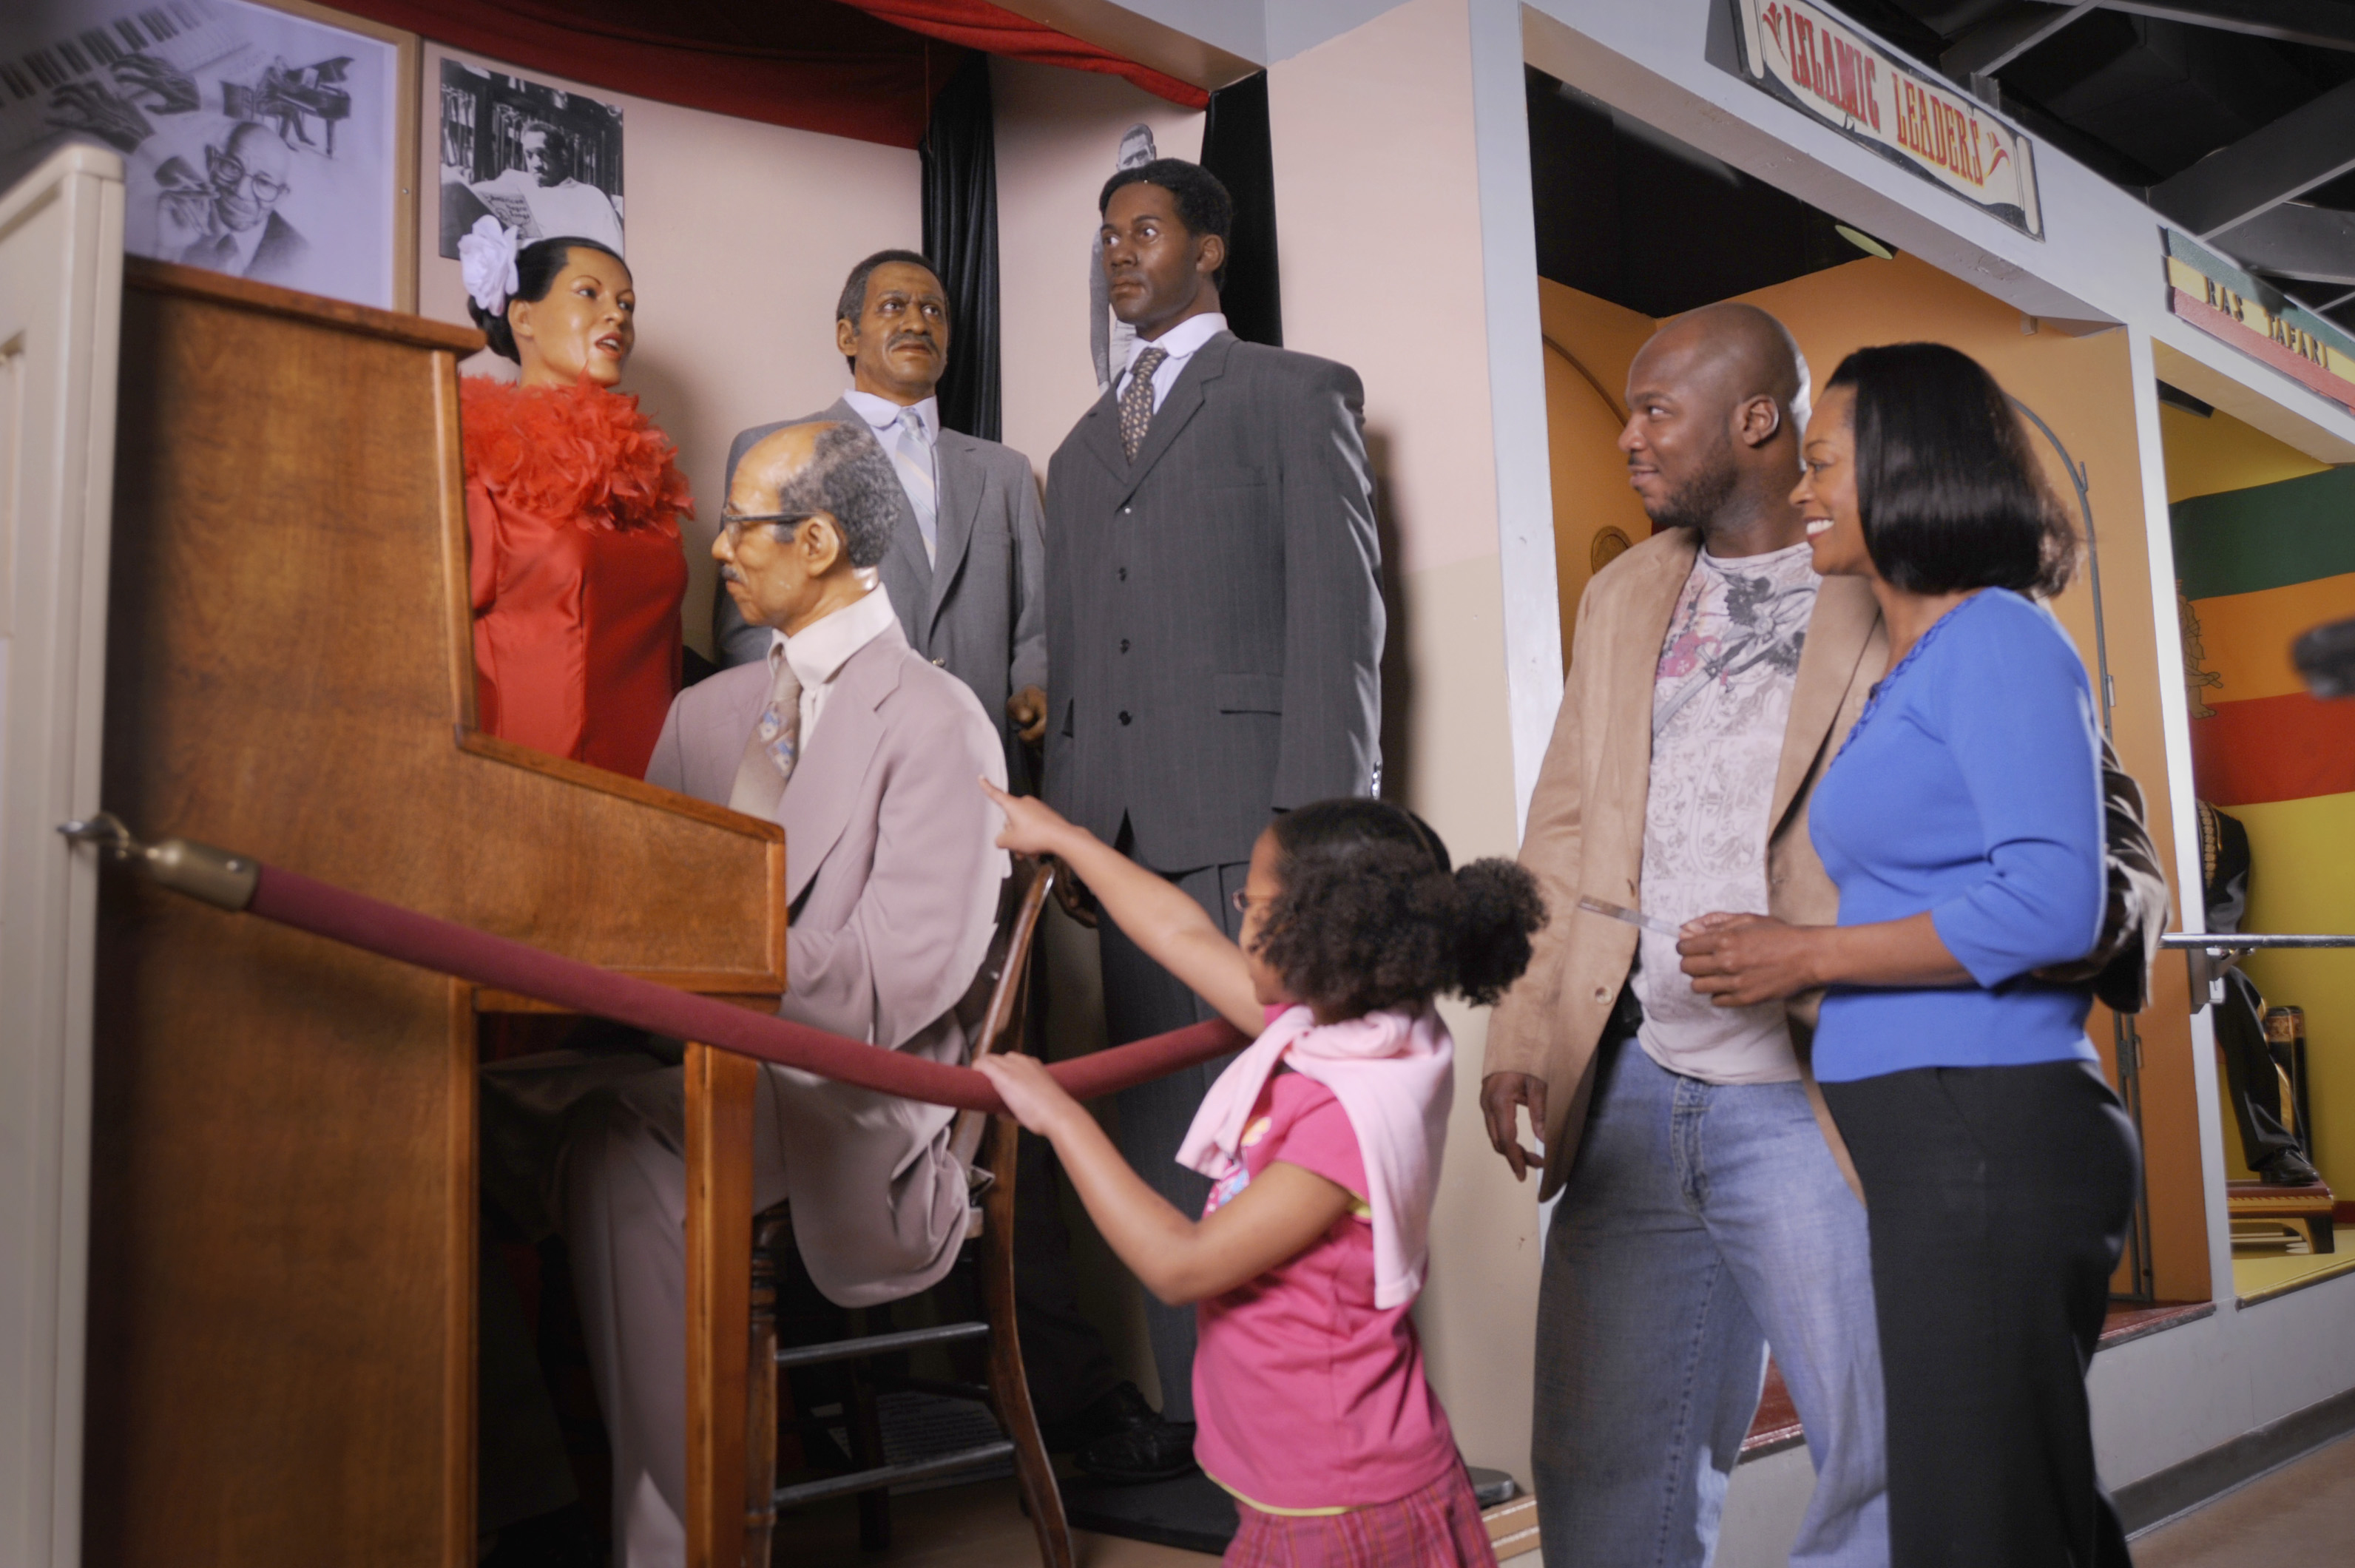 Great Blacks in Wax Museum (Baltimore) - 2020 All You Need ... |Wax Museum Baltimore Harbor